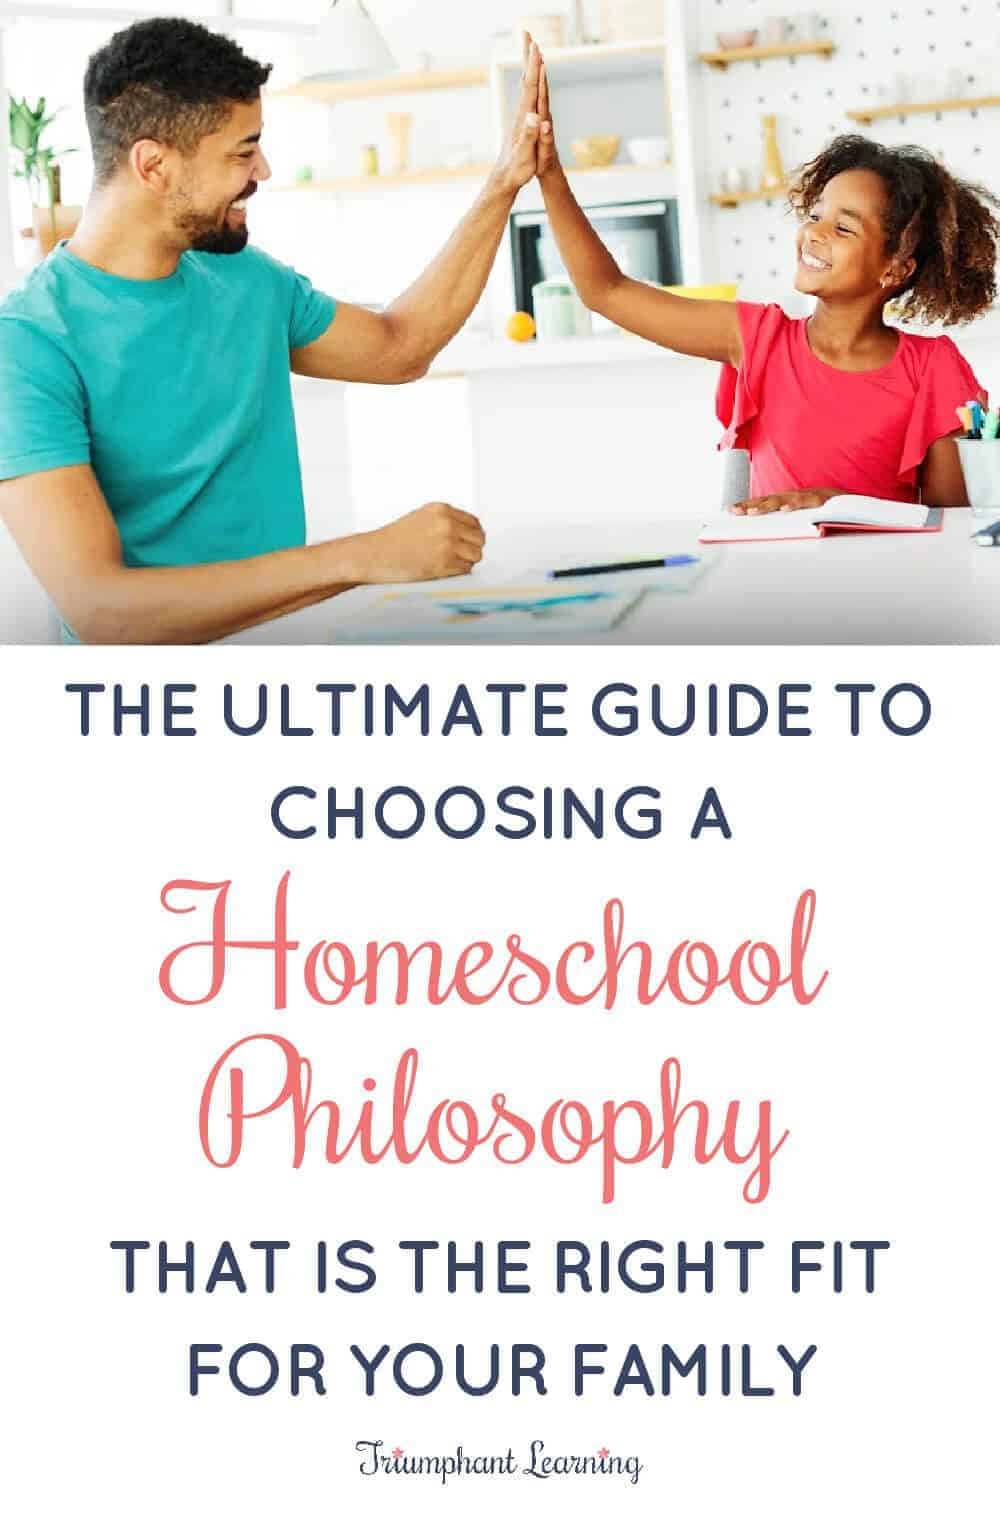 Learn what you need to know to choose a homeschool philosophy. Includes an overview and resource suggestions of seven common homeschool approaches. via @TriLearning